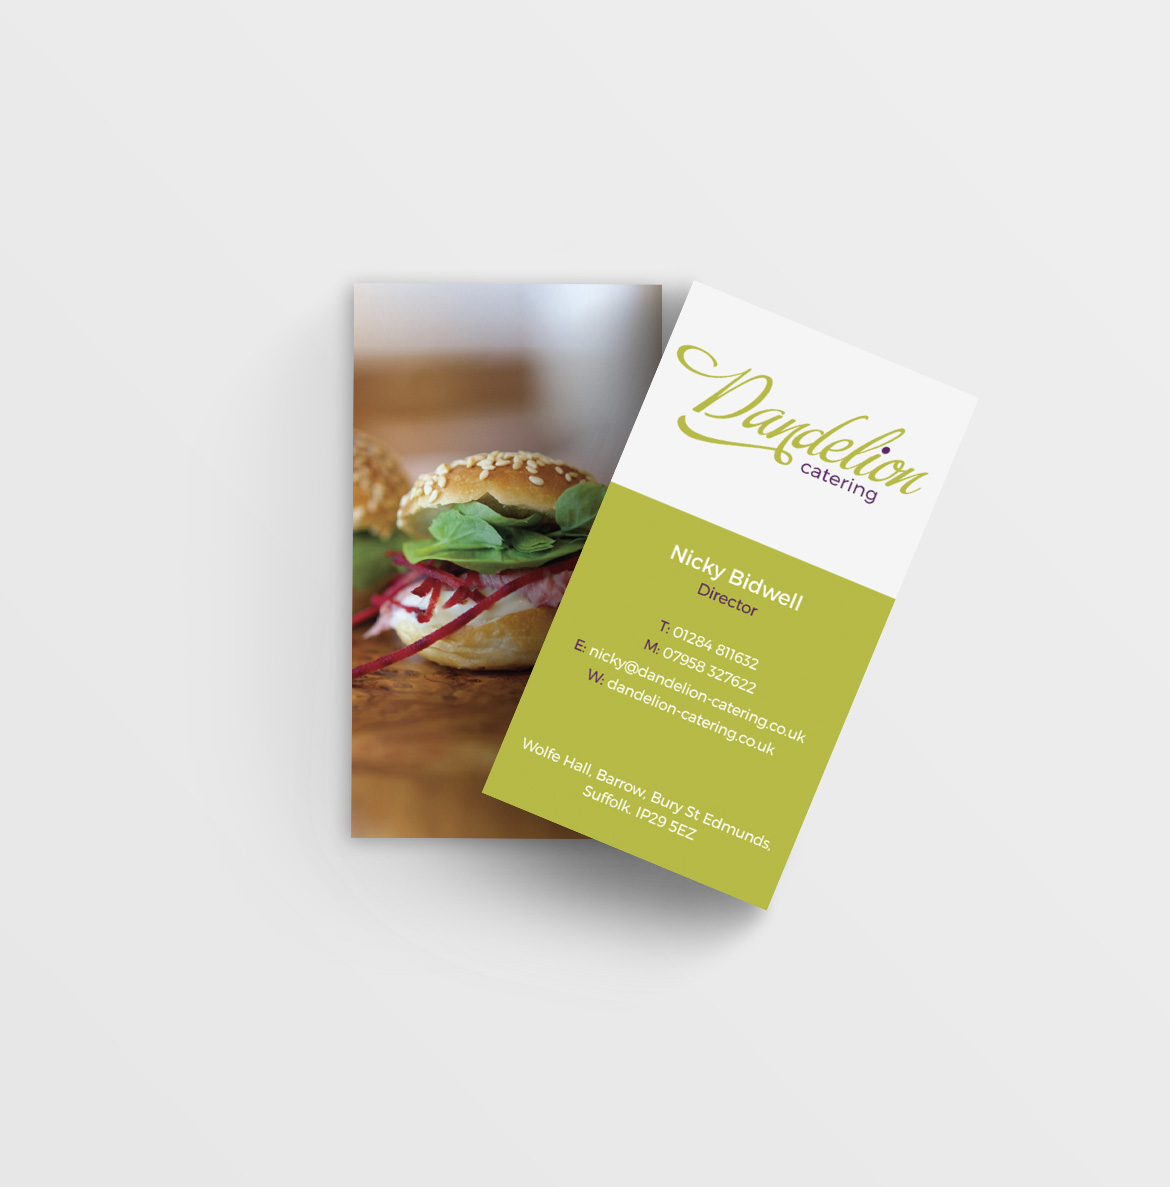 Dandelion Catering Business Card